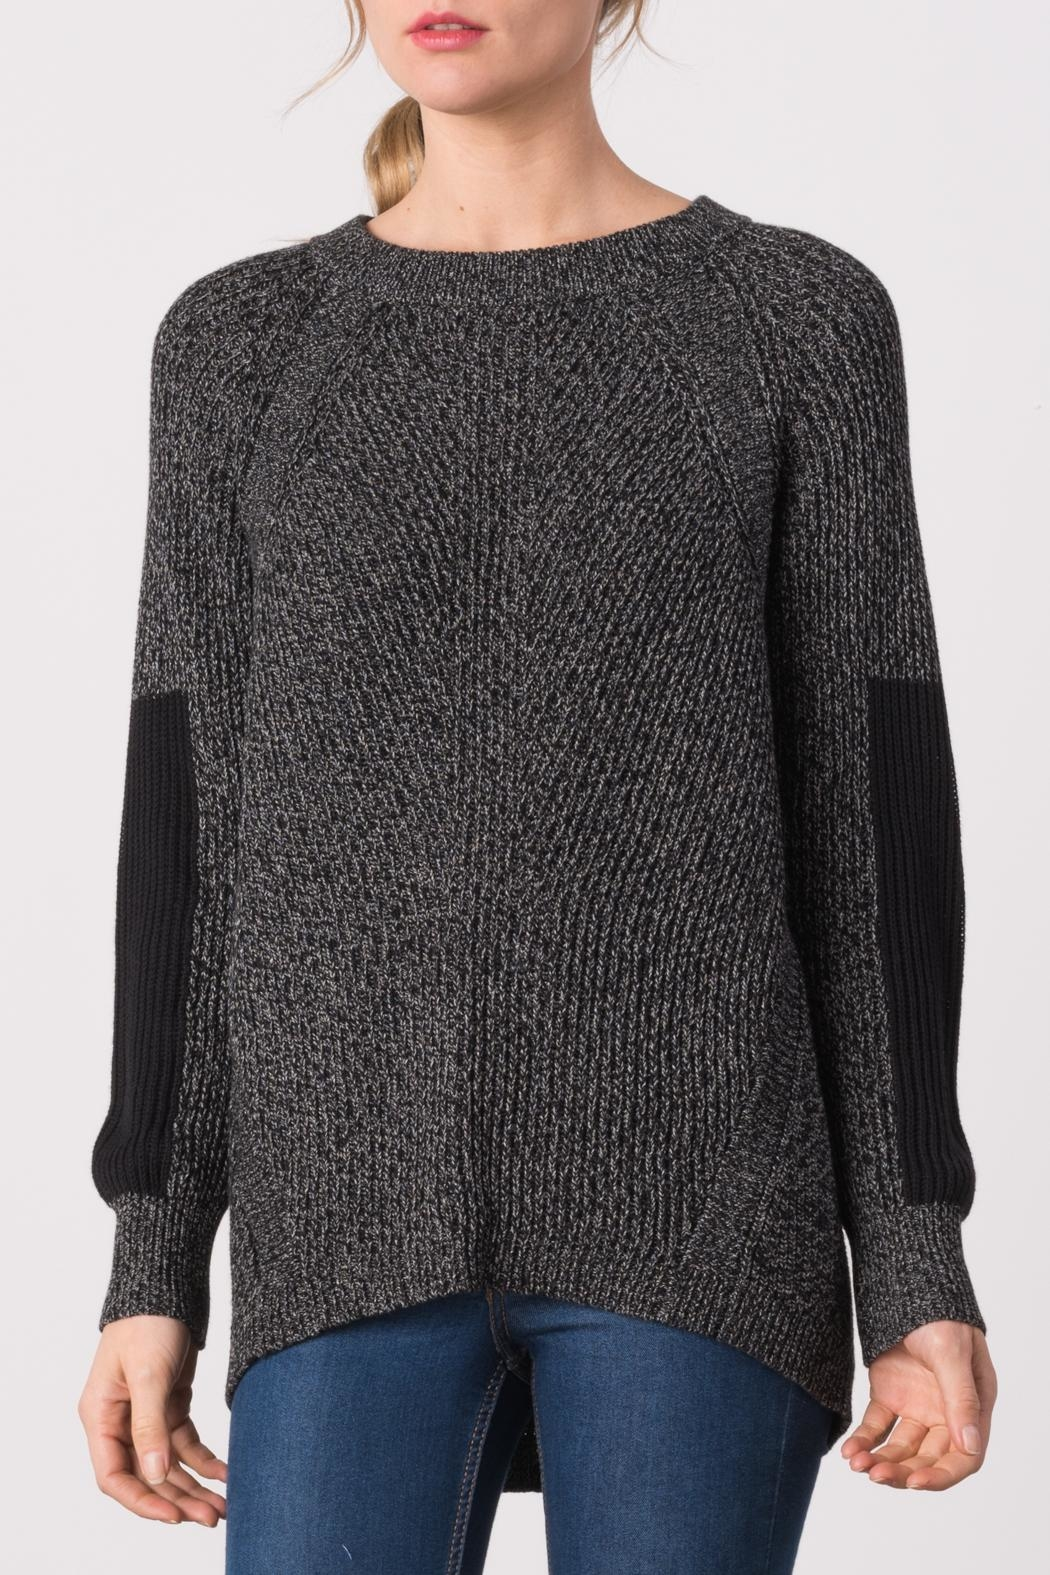 Margaret O'Leary Eula Pullover - Main Image